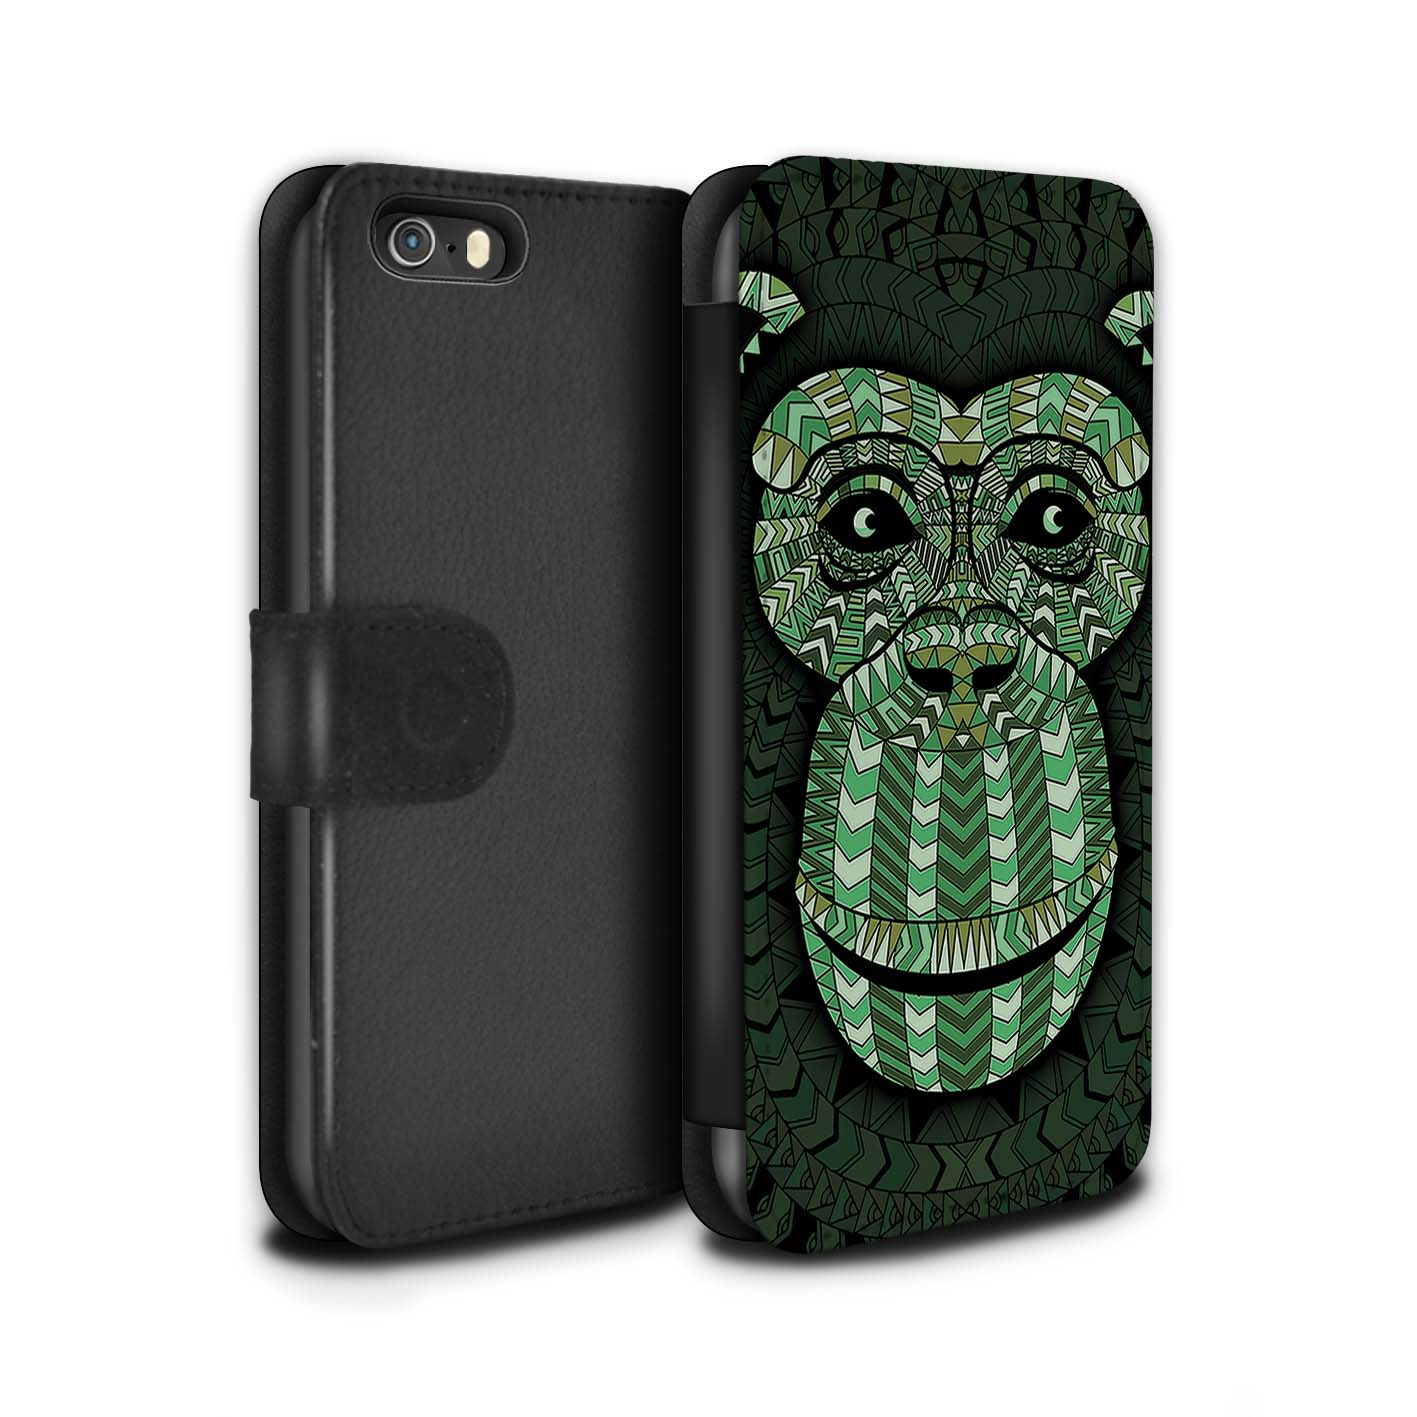 Case-Wallet-for-Apple-iPhone-5-5S-Aztec-Animal-Design thumbnail 19